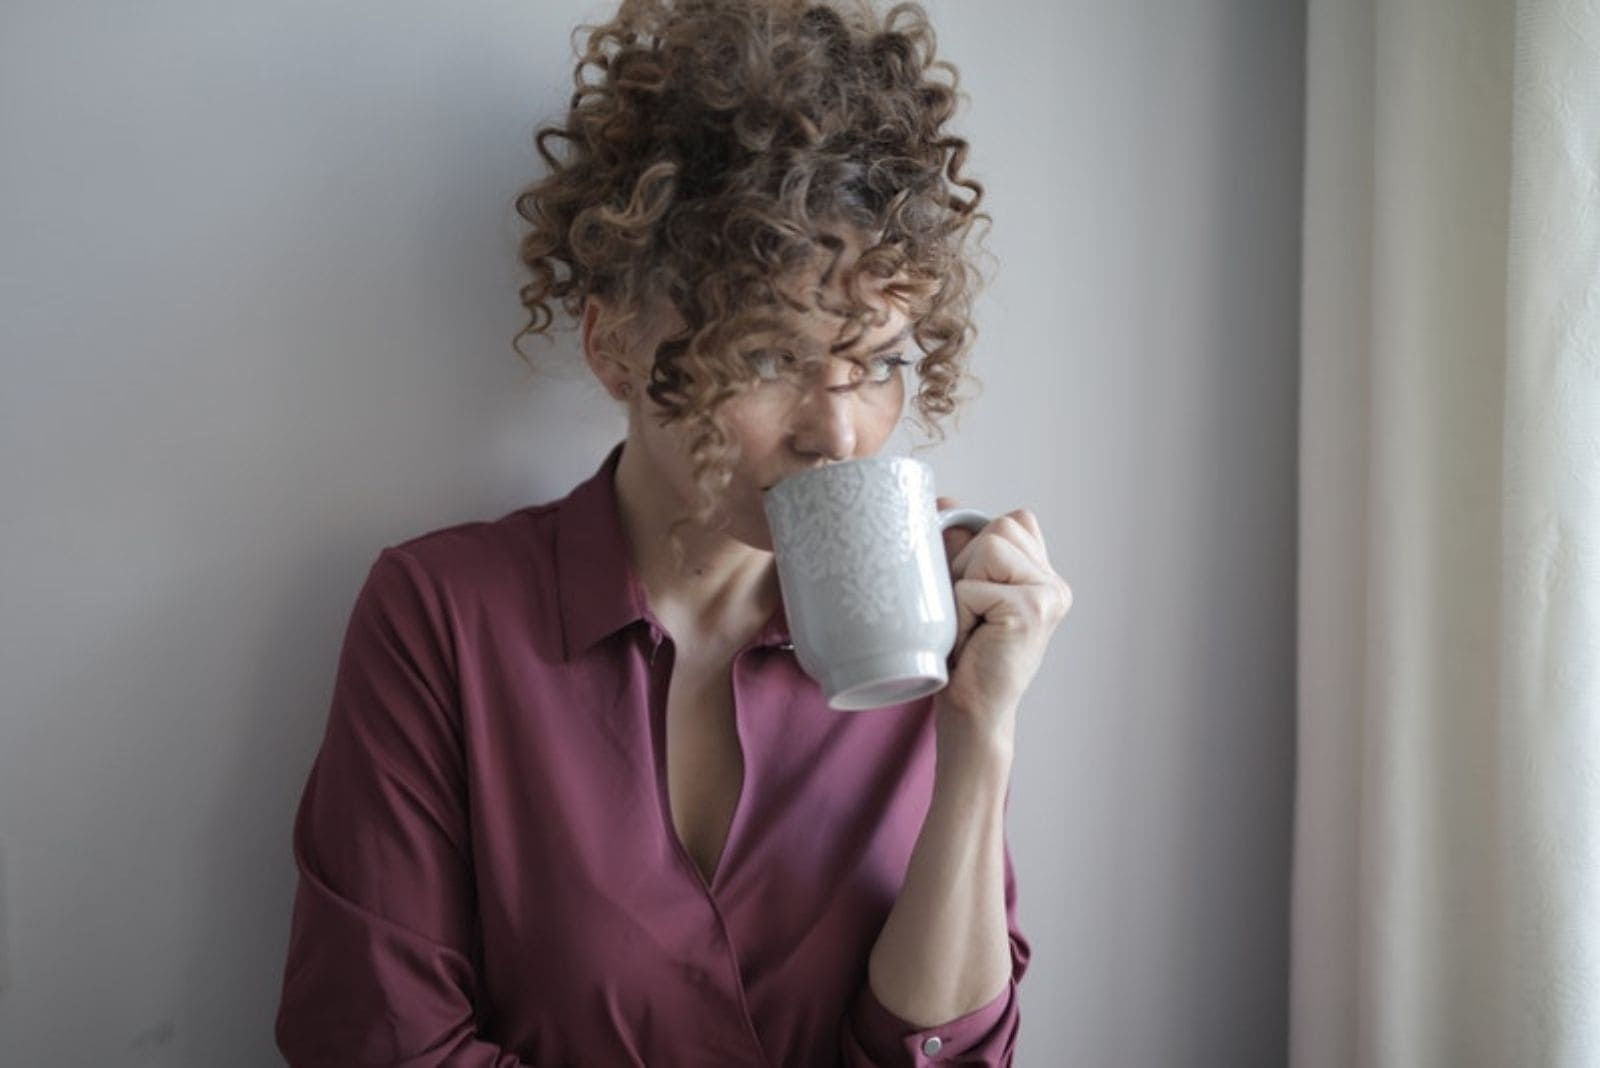 woman with curly hair leaning on the room's wall looking away and drinking from a mug